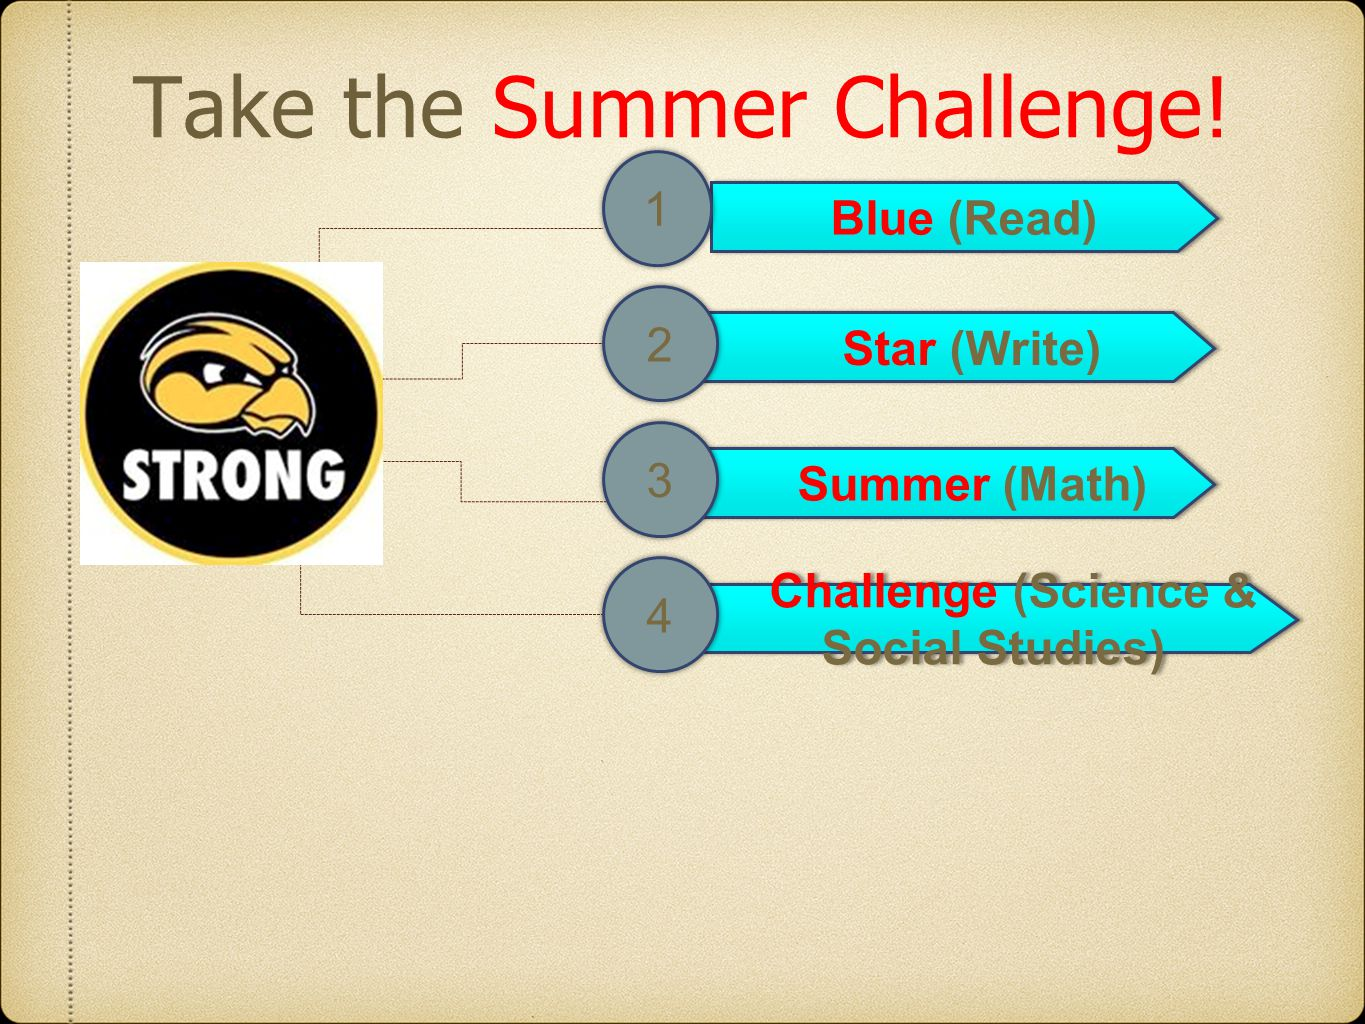 Blue (Read) 1 Star (Write) 2 Summer (Math) 3 Challenge (Science & Social Studies) 4 LOGO Take the Summer Challenge!